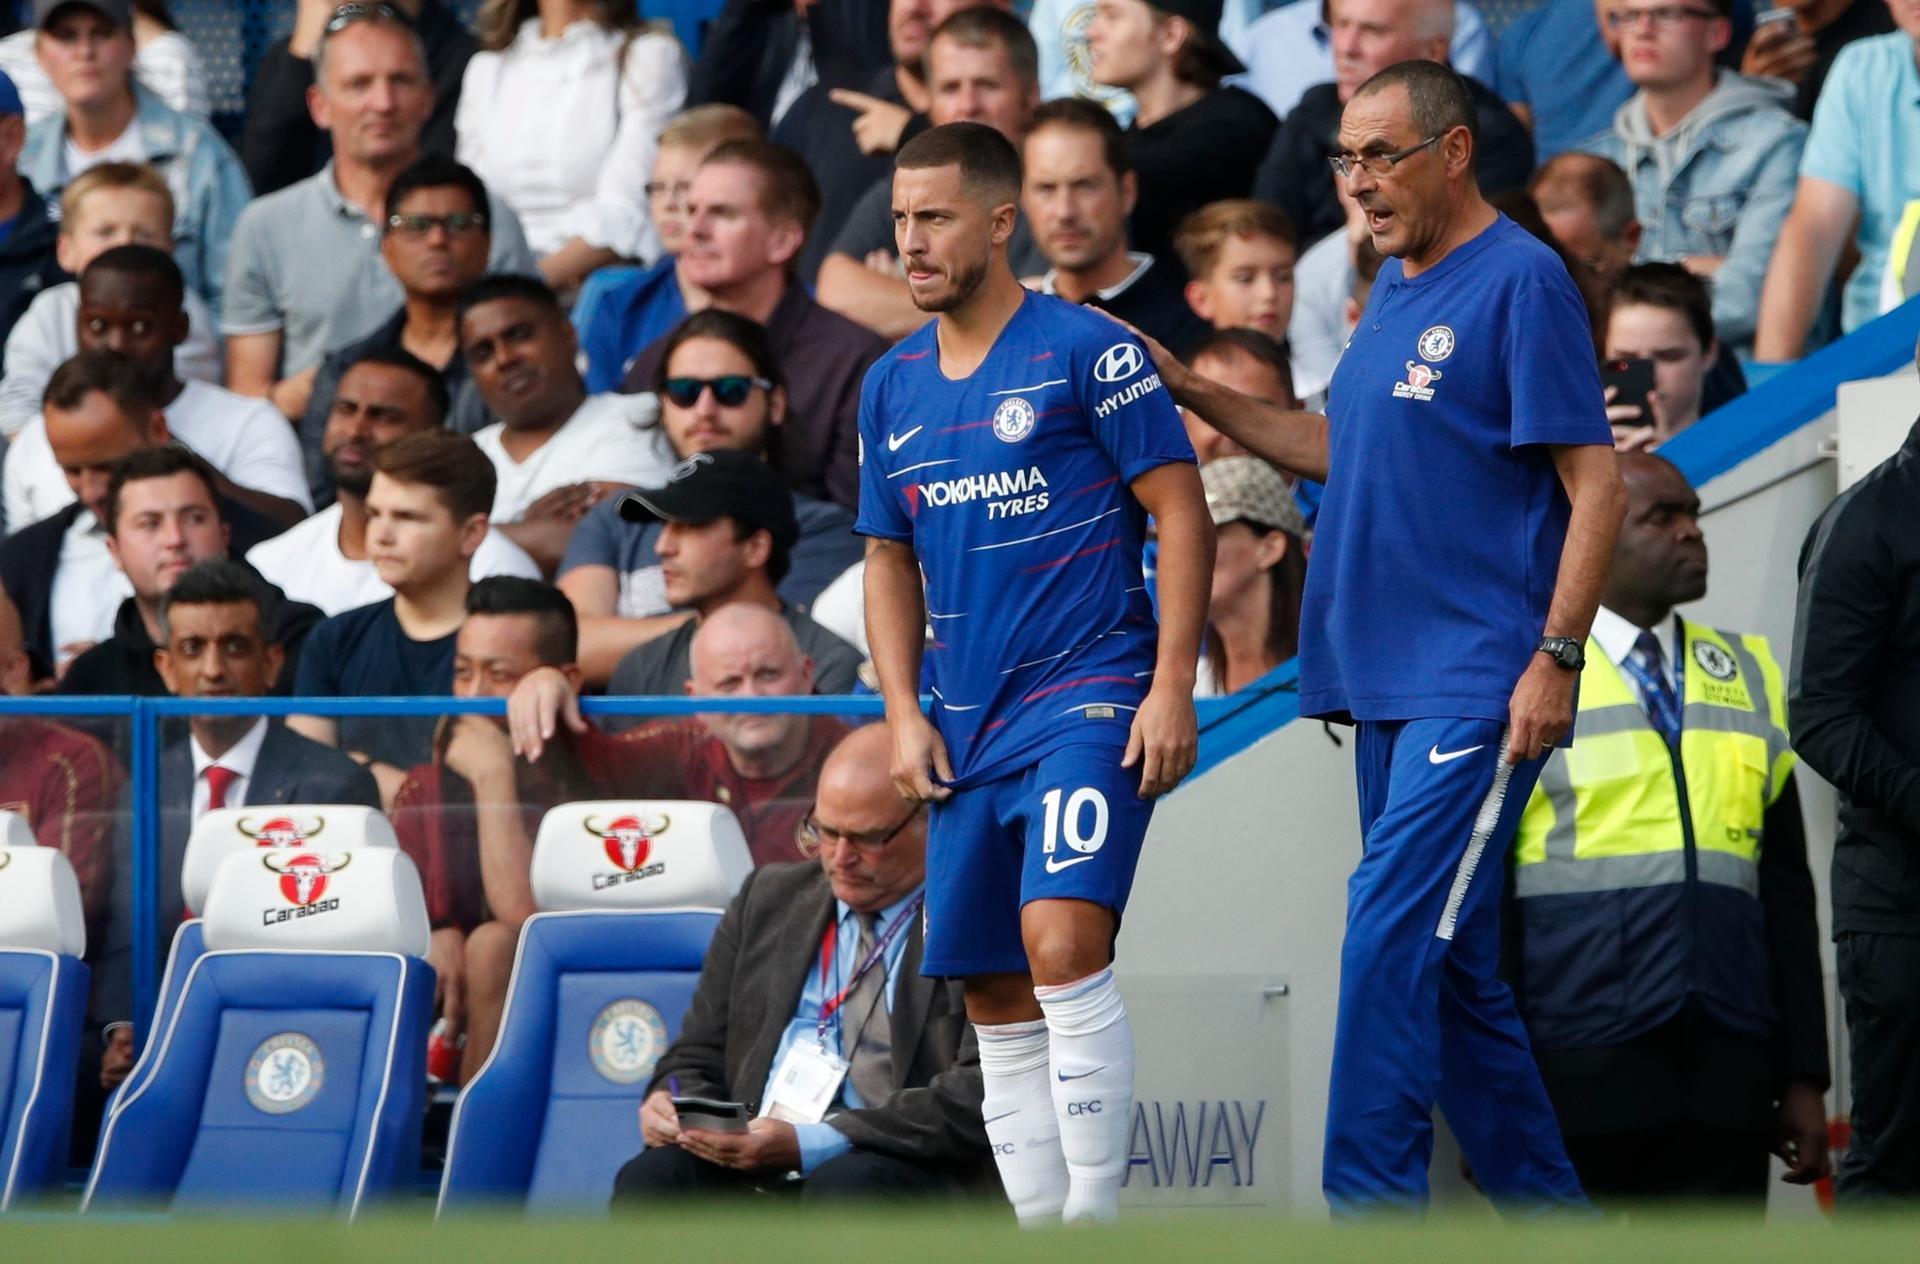 Hazard 'happy' to finish career at Chelsea if Madrid move doesn't happen